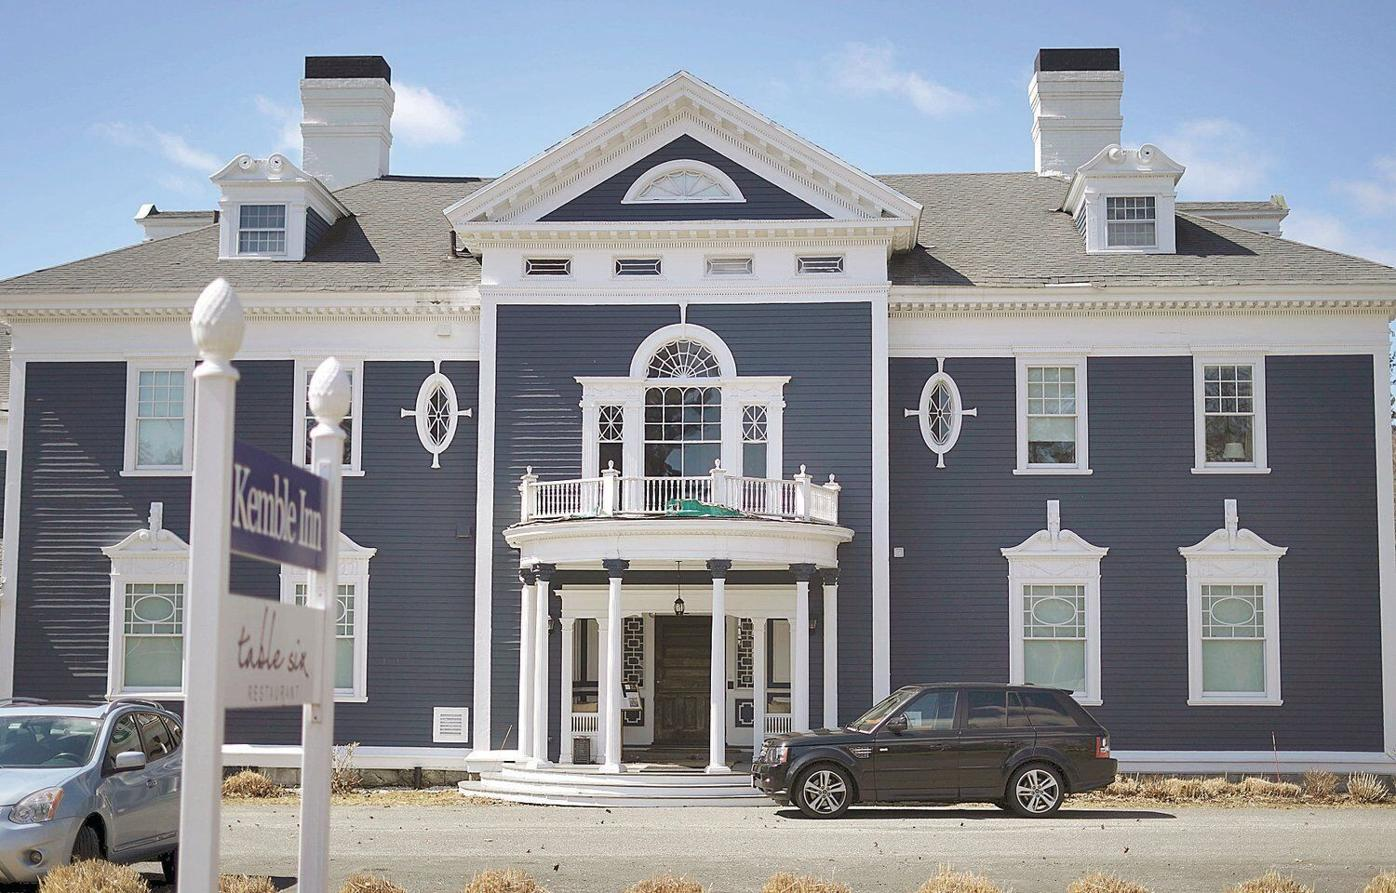 Historic and refurbished, Kemble Inn can be yours for $4.6 million (copy)